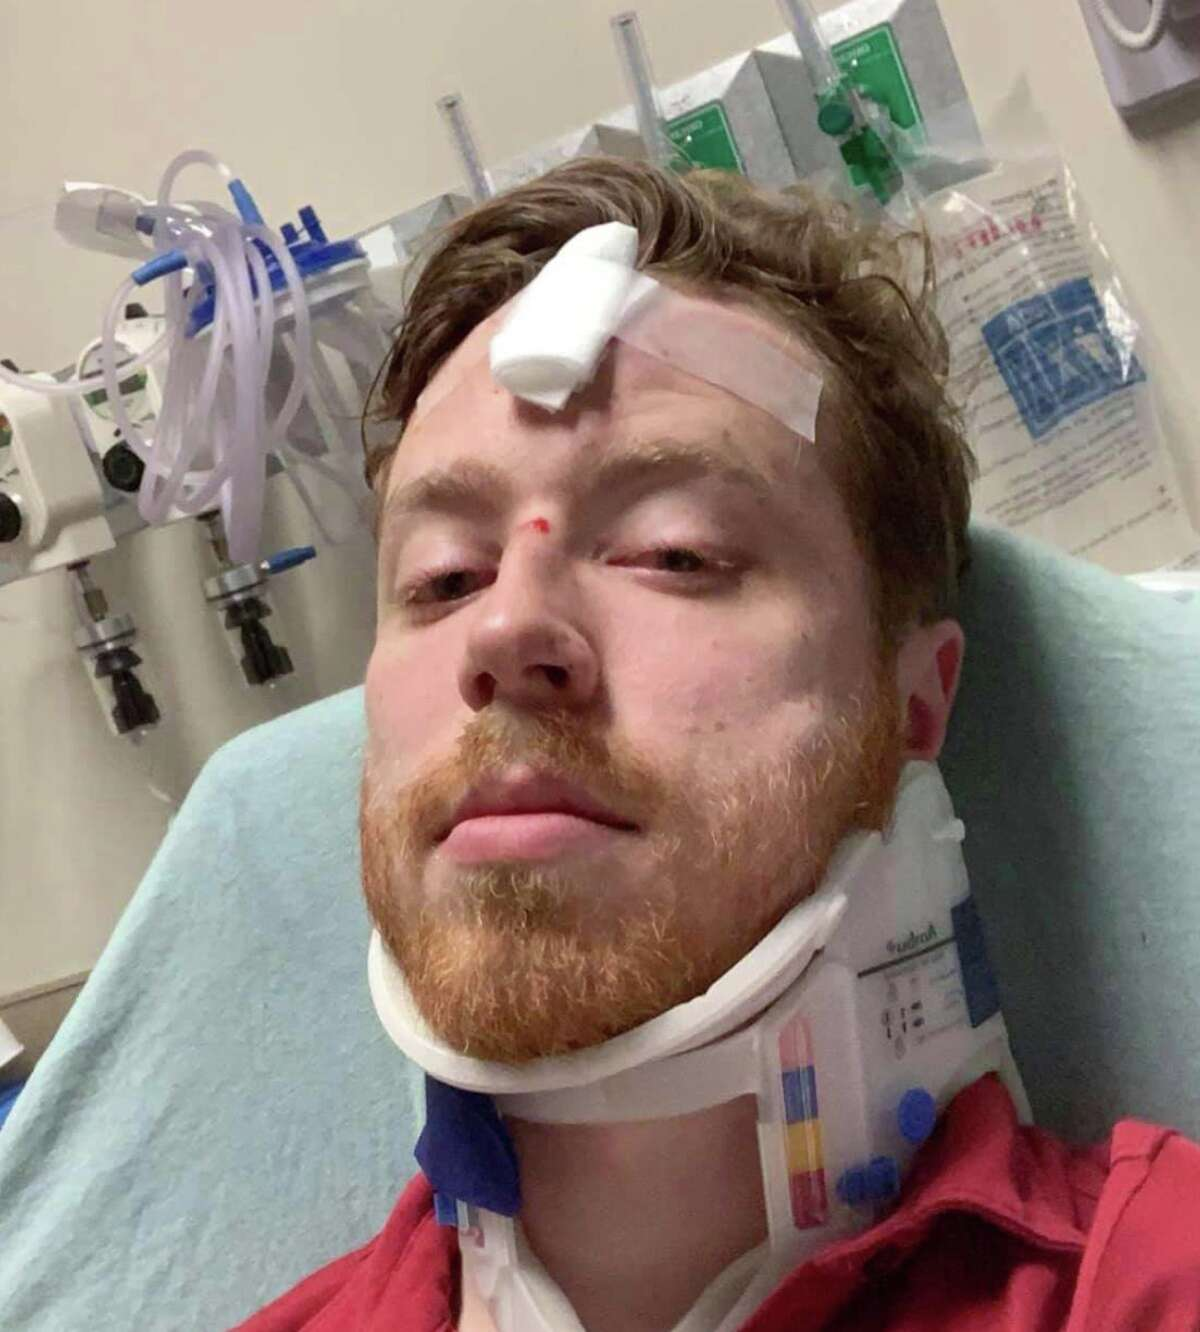 Spencer Deehring grew up in Houston. He and Tristan Perry were attacked in downtown Austin in an alleged hate crime.